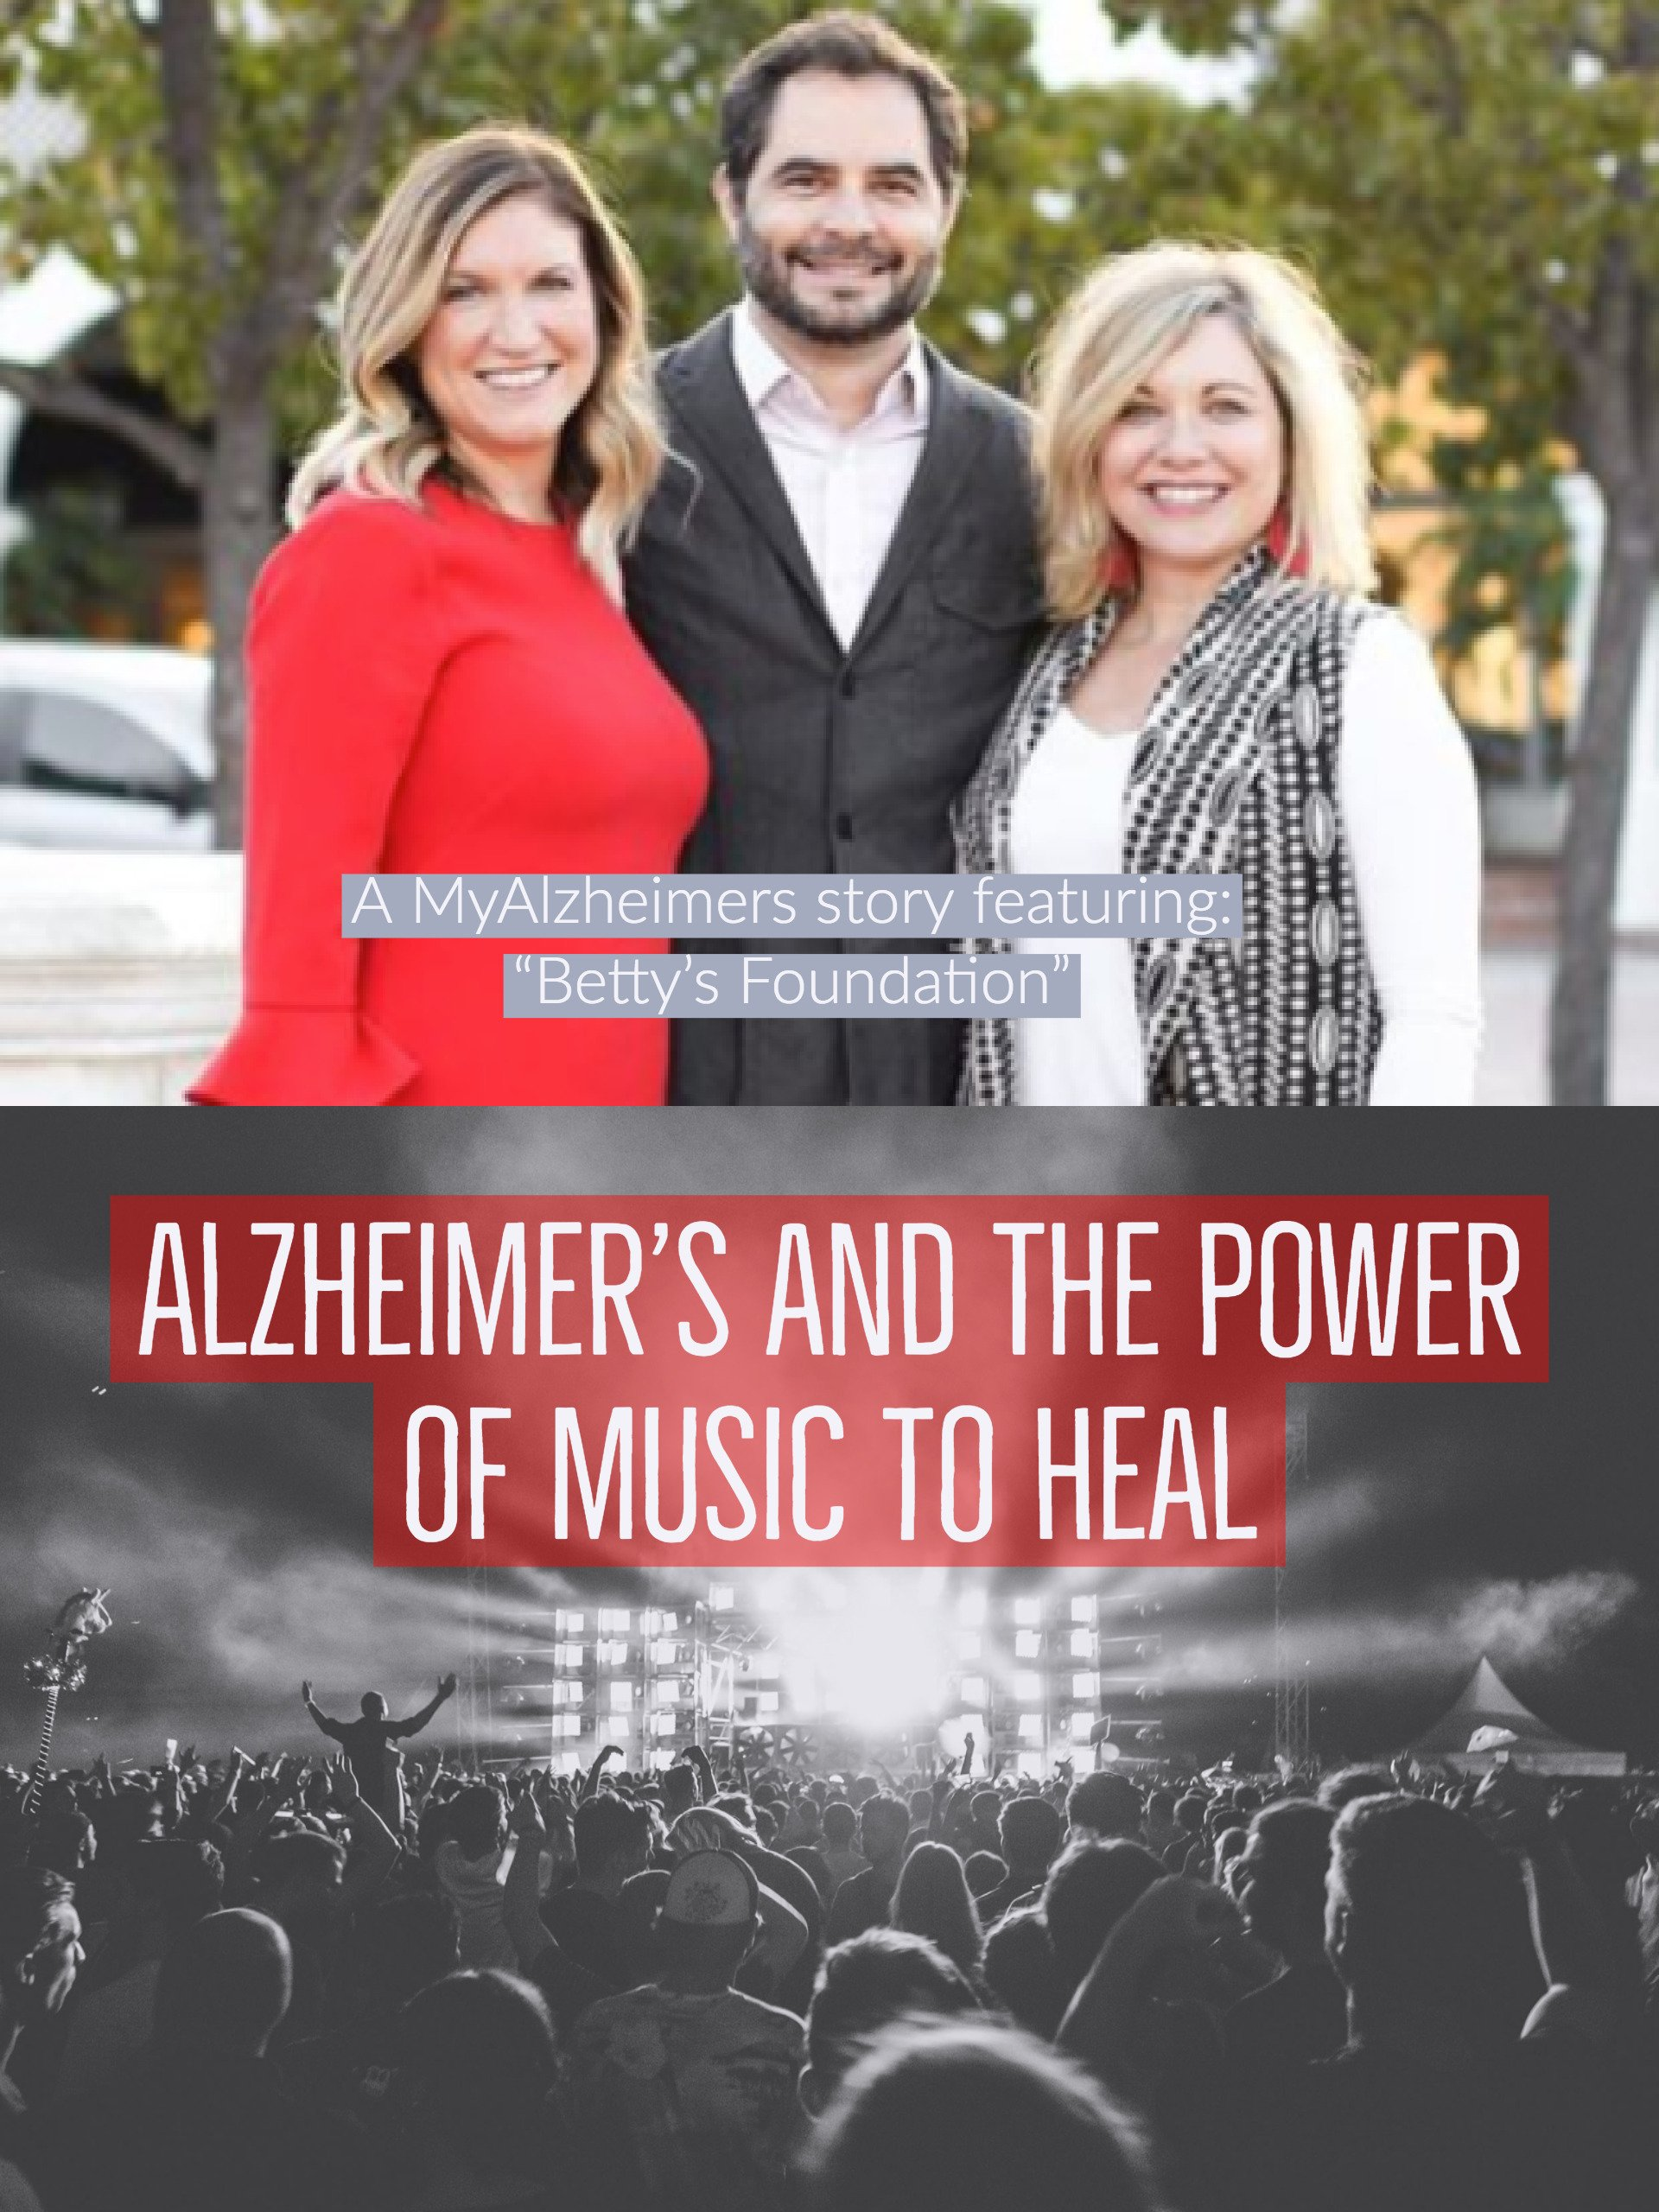 Alzheimer's and The Power of Music to Heal